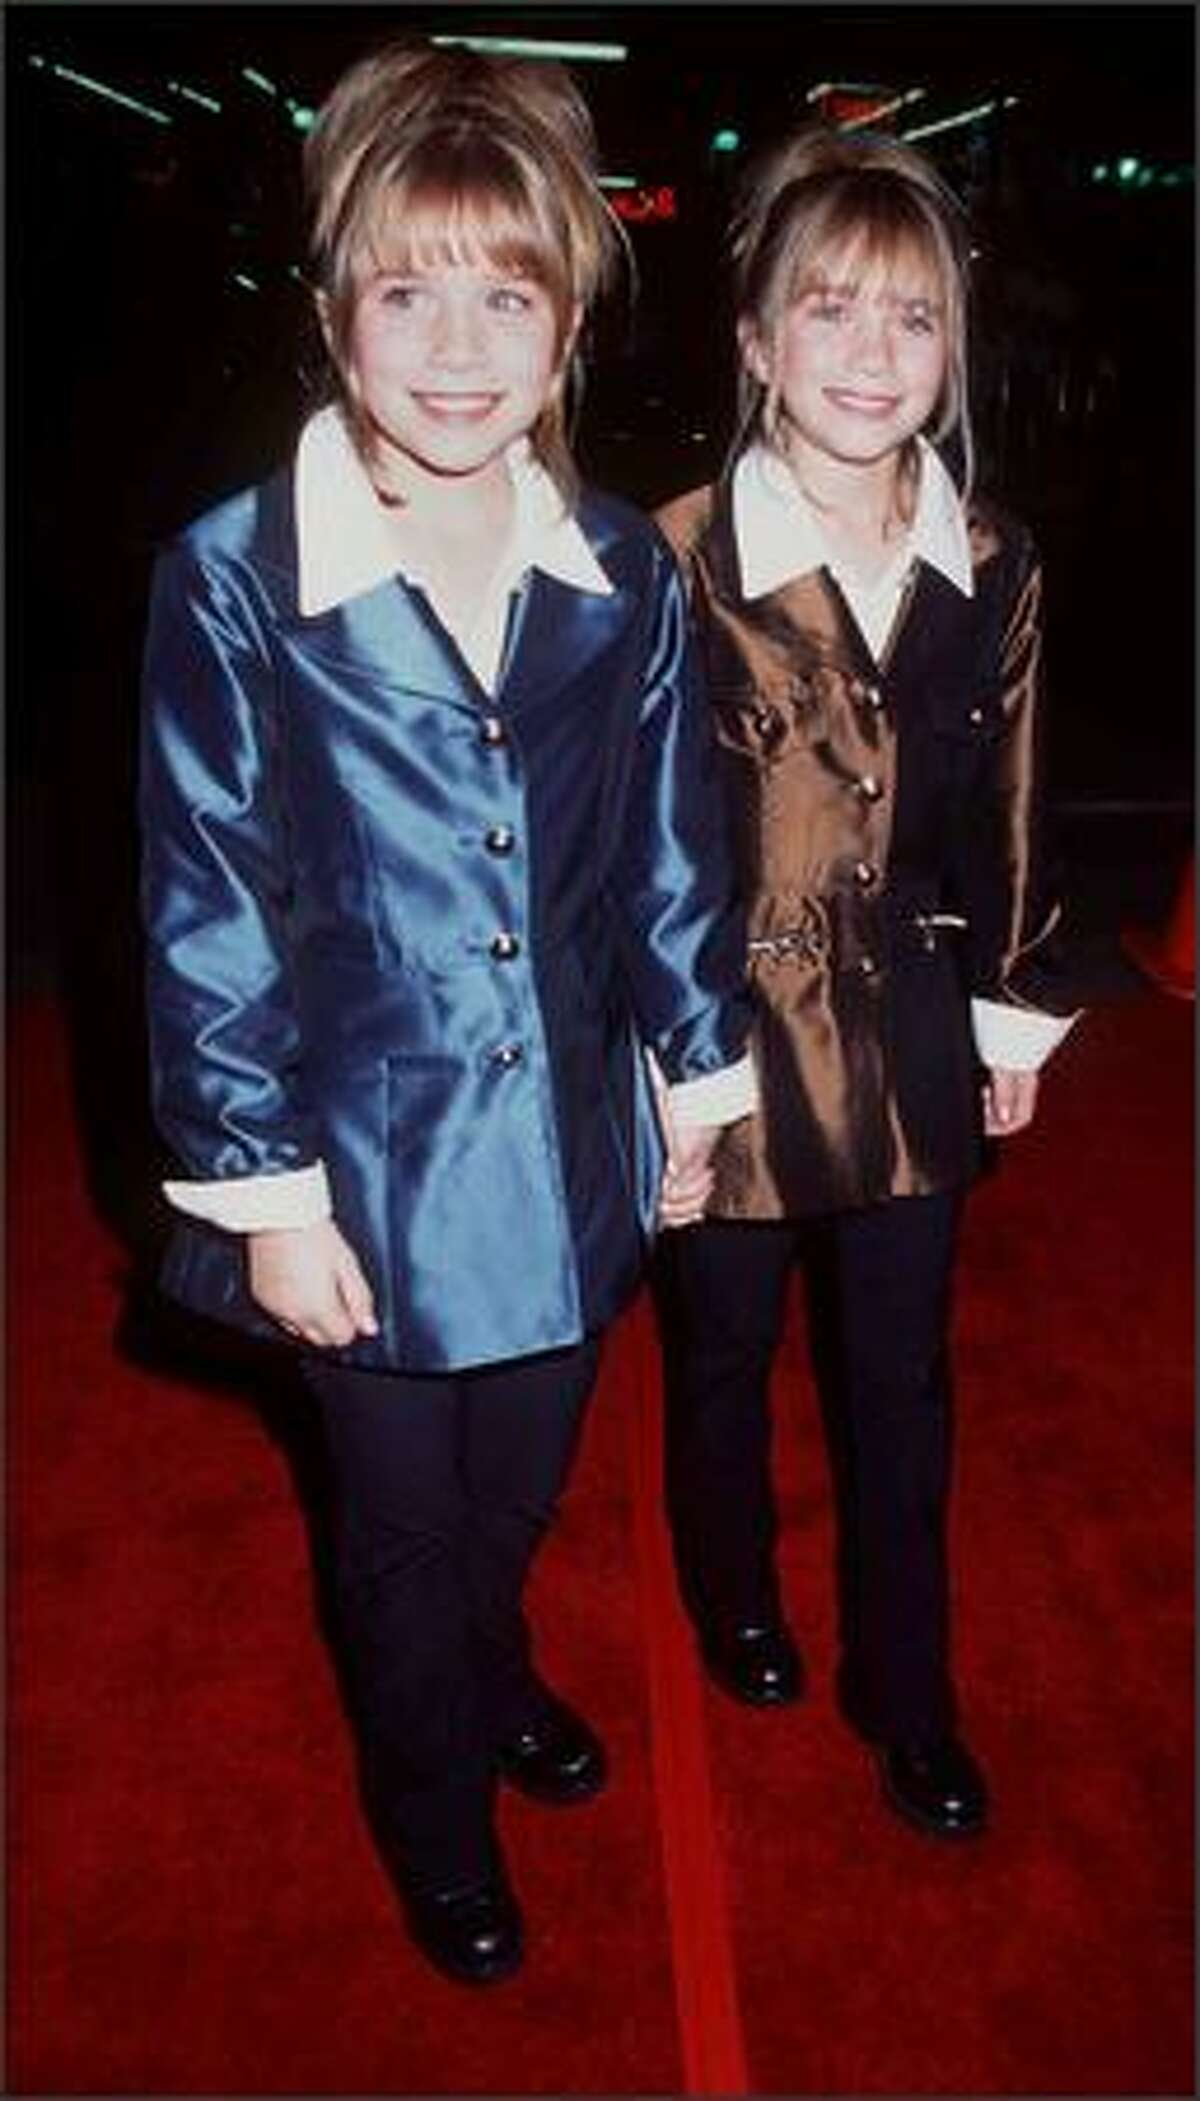 """Fortunately, this can be excused by the fact they were just 11 at the time. Mary-Kate (left) and Ashley at the premiere of """"Spice World"""" in Hollywood, Jan. 22, 1998."""